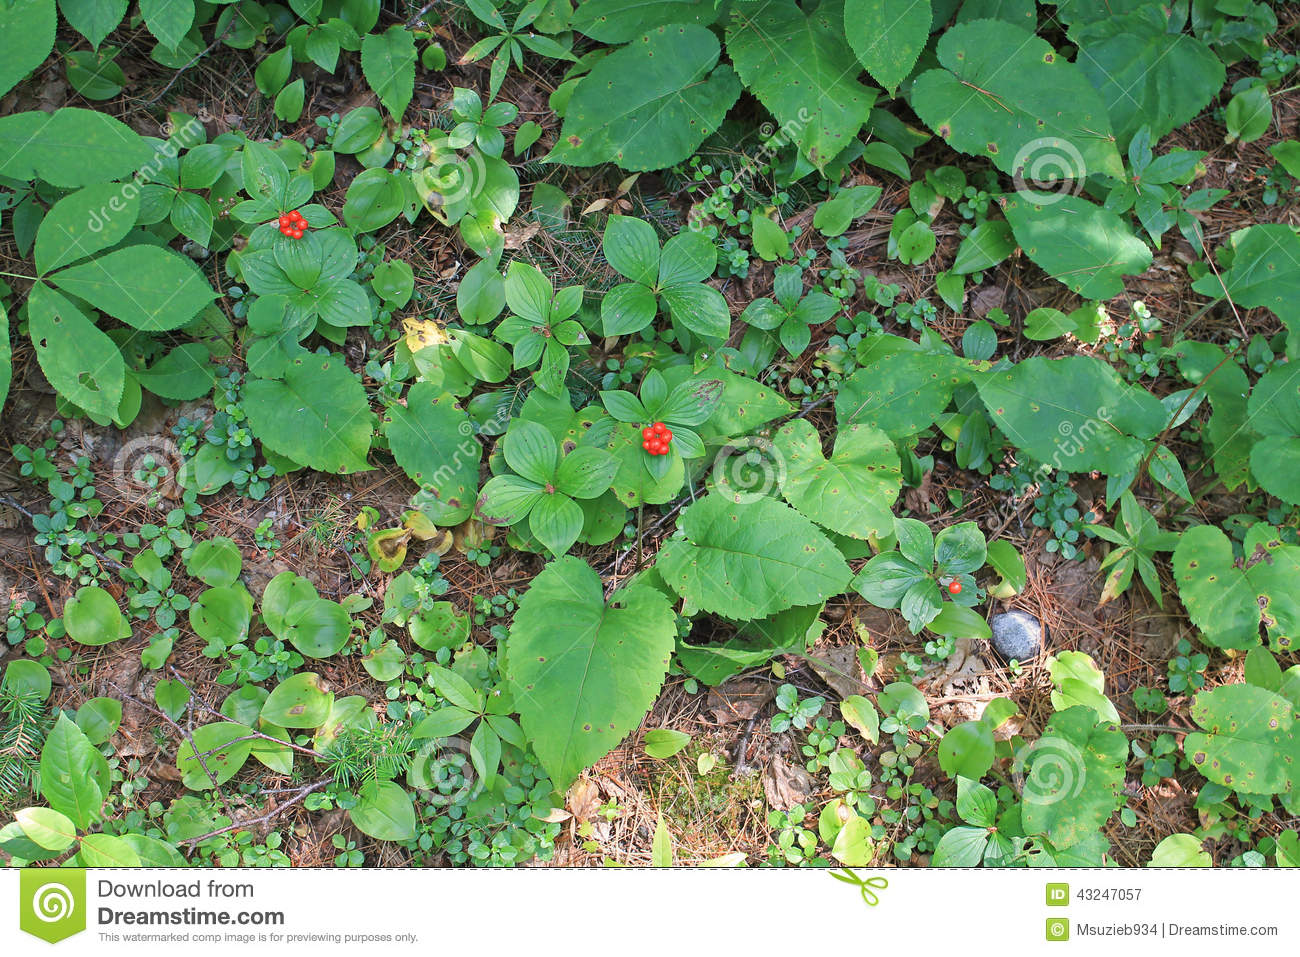 Growing bunchberries - dwarf dogwood shrubs. Two have bright red ...